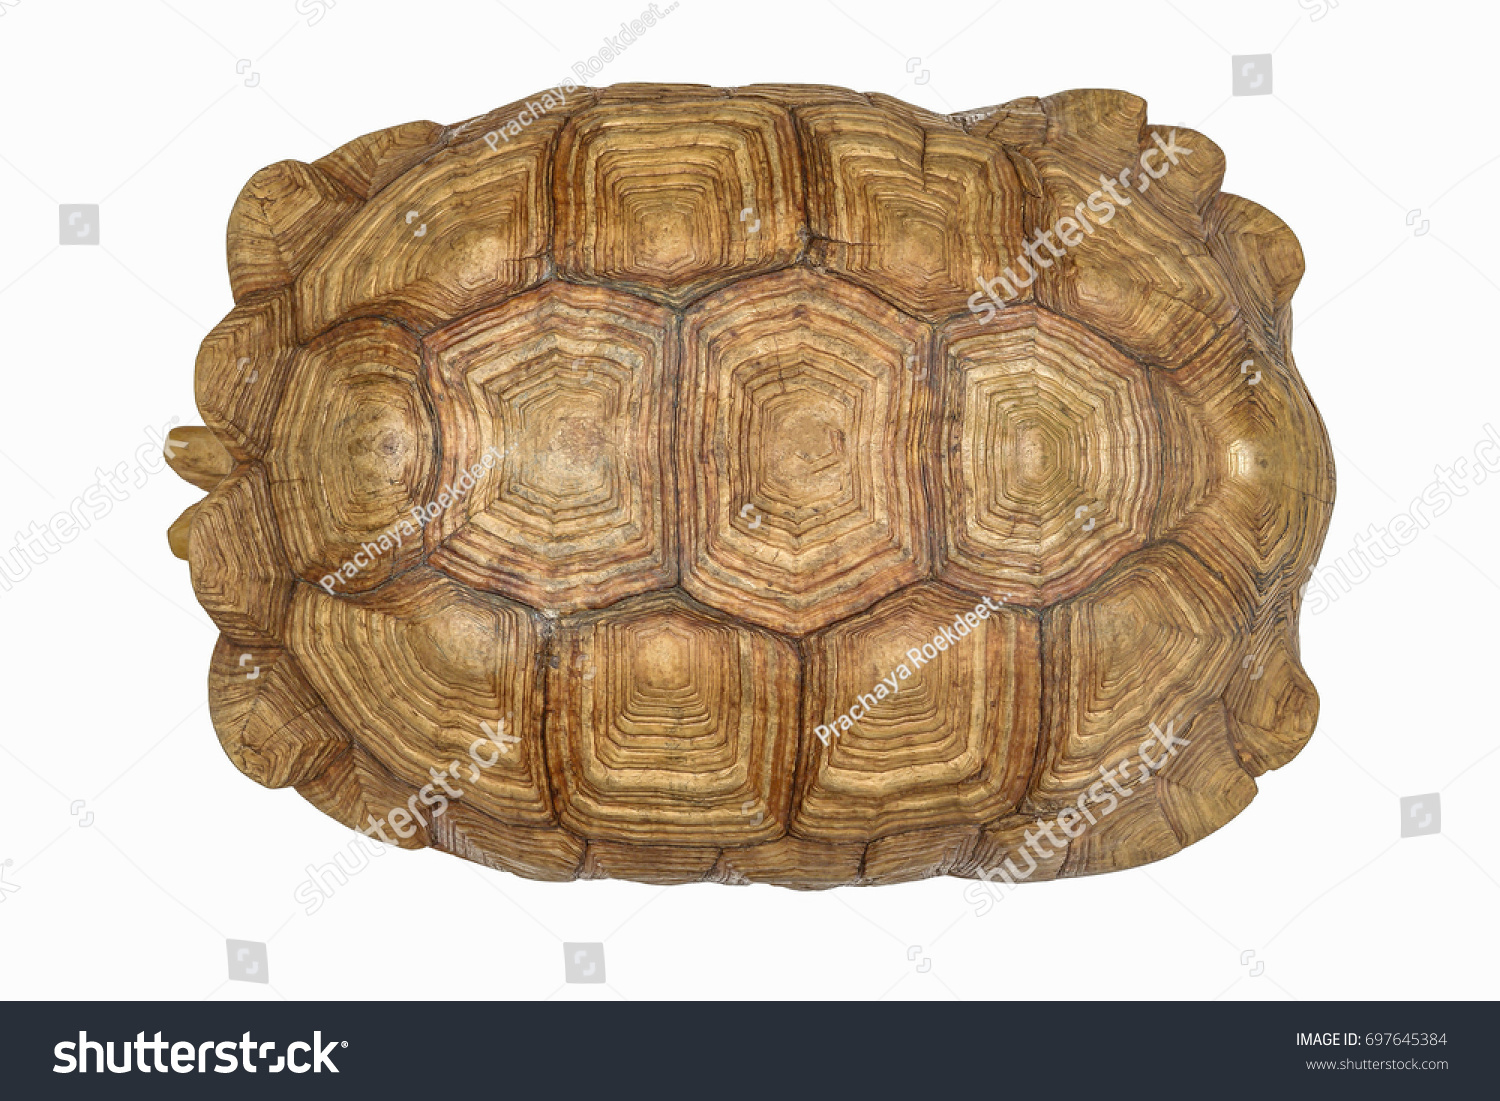 giant tortoise shell texture turtle carapace stock photo 697645384 shutterstock. Black Bedroom Furniture Sets. Home Design Ideas